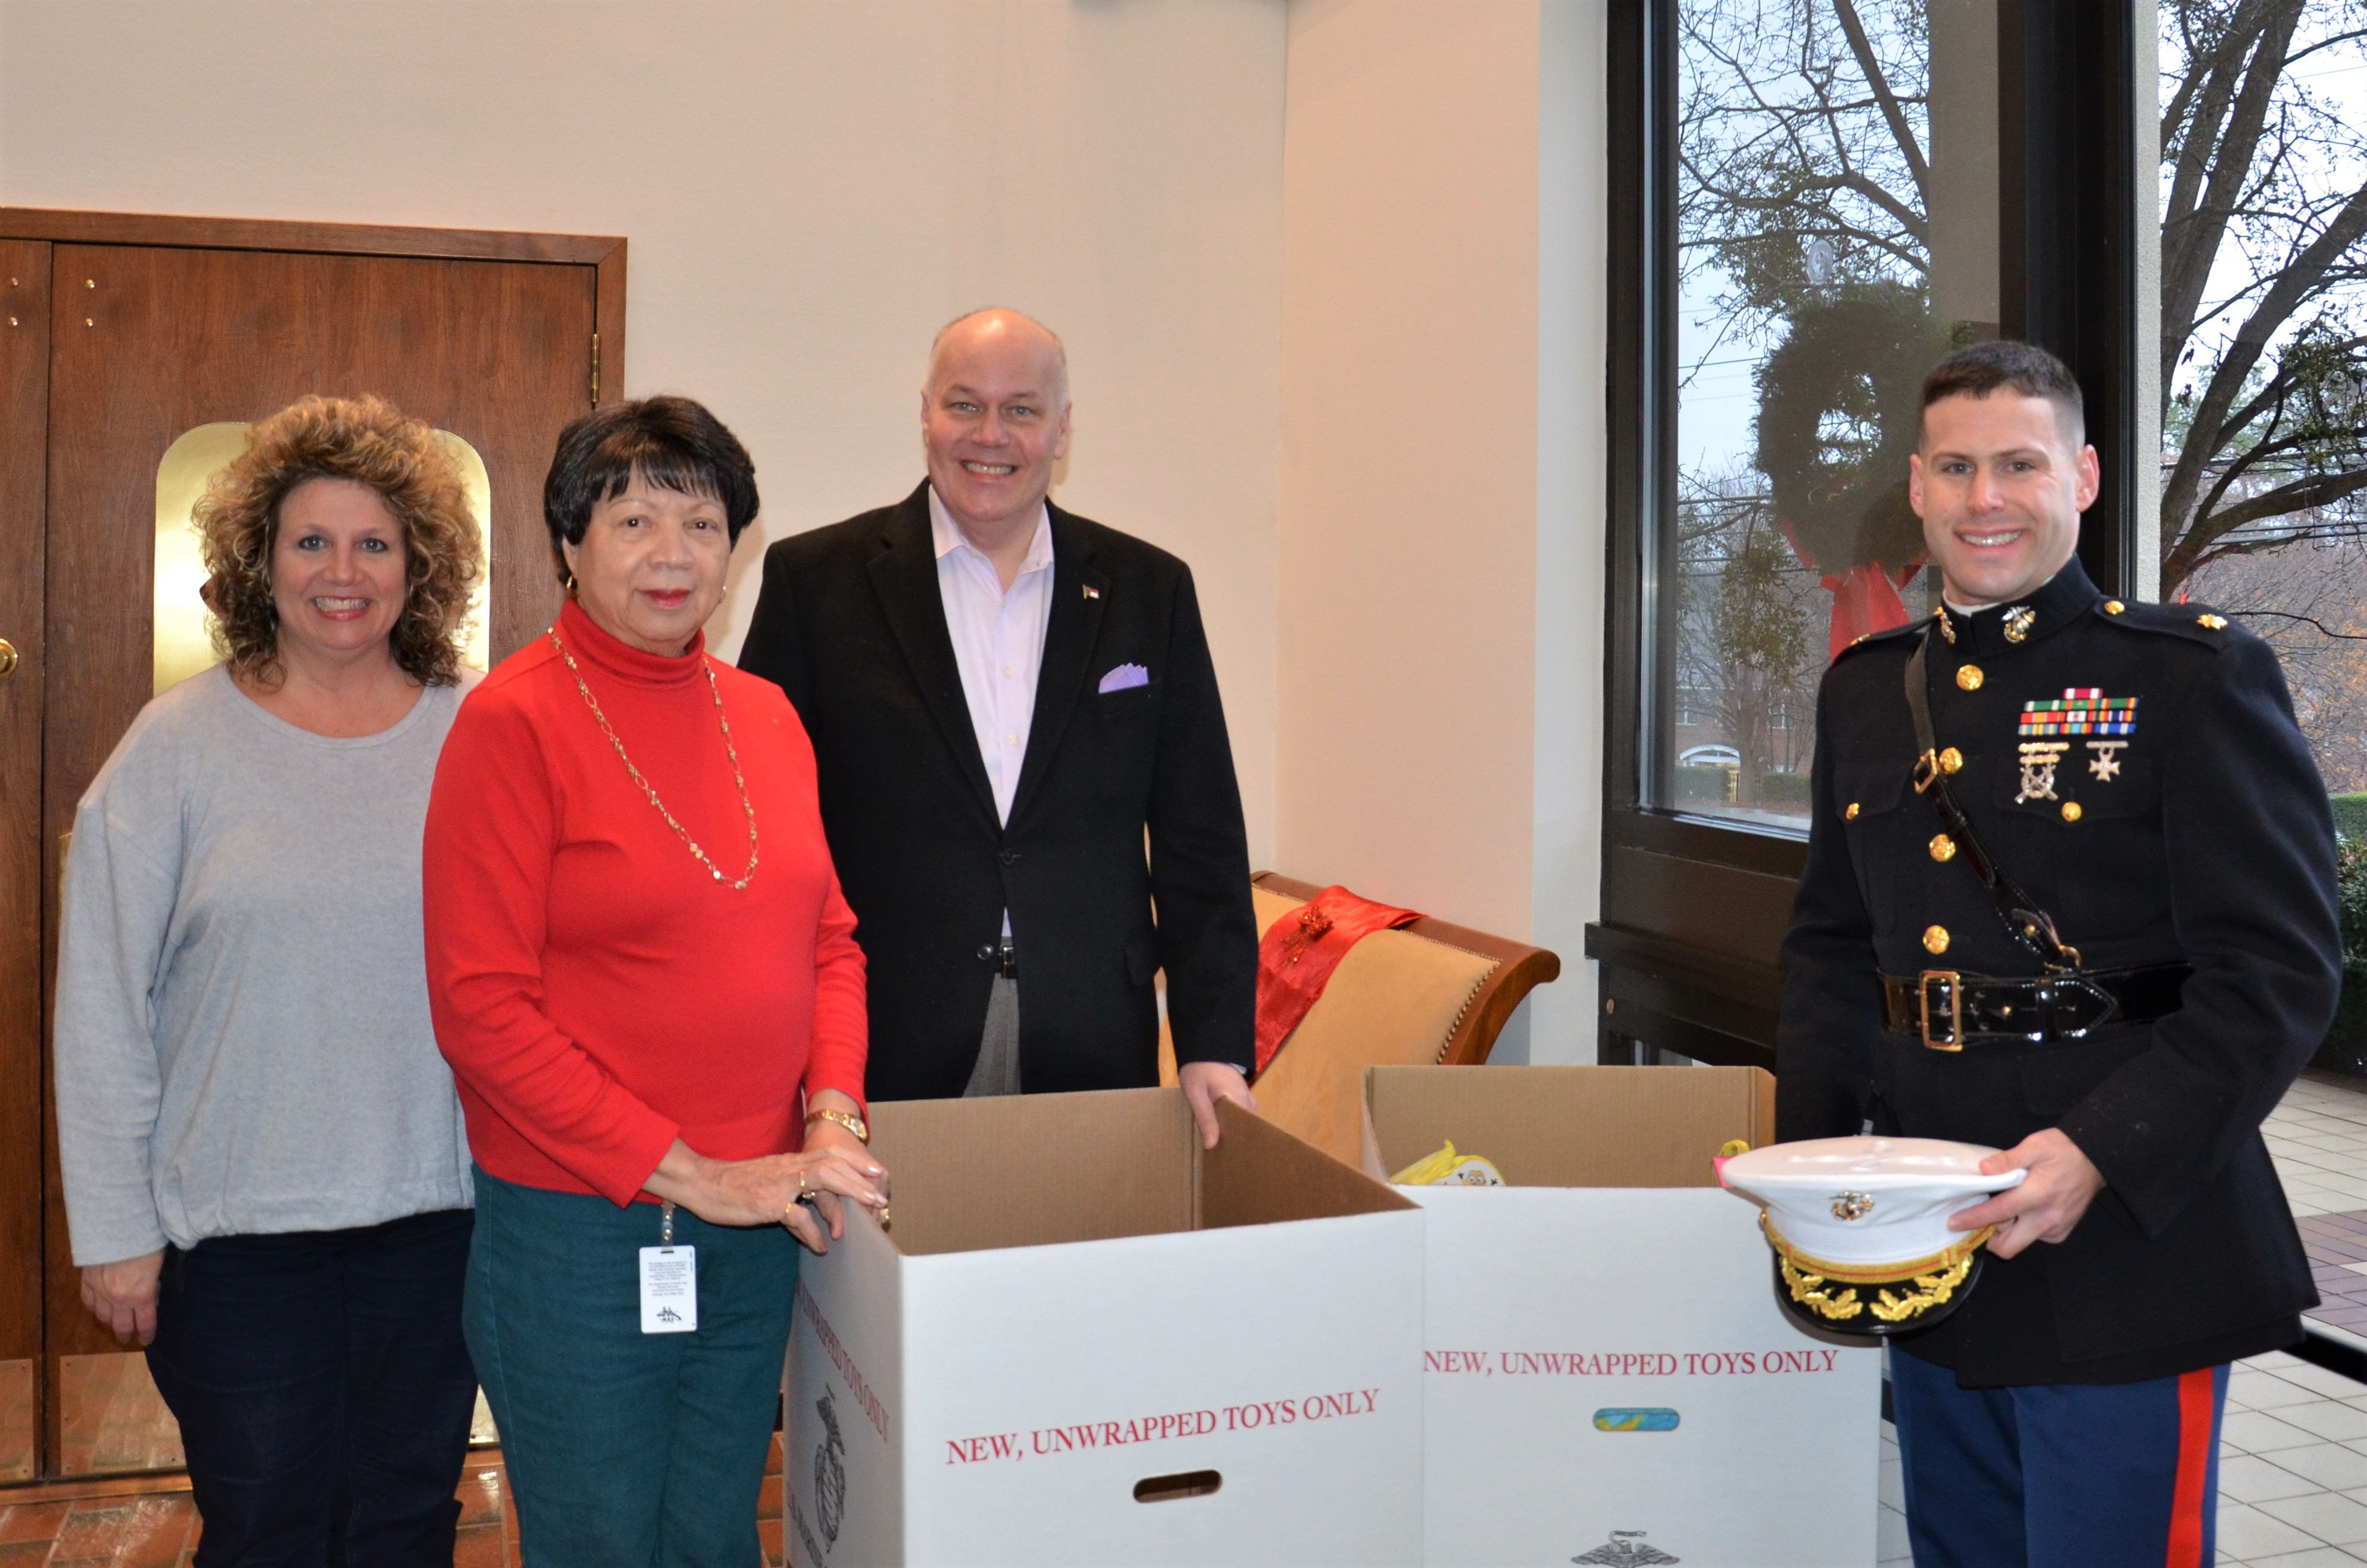 Division of Public Health Emplyoees (right to left) Carla Moore, Betty Baker, Mark Benton and Maj. Brad Brecher, USMCR, helped collect toys for Toys for Tots